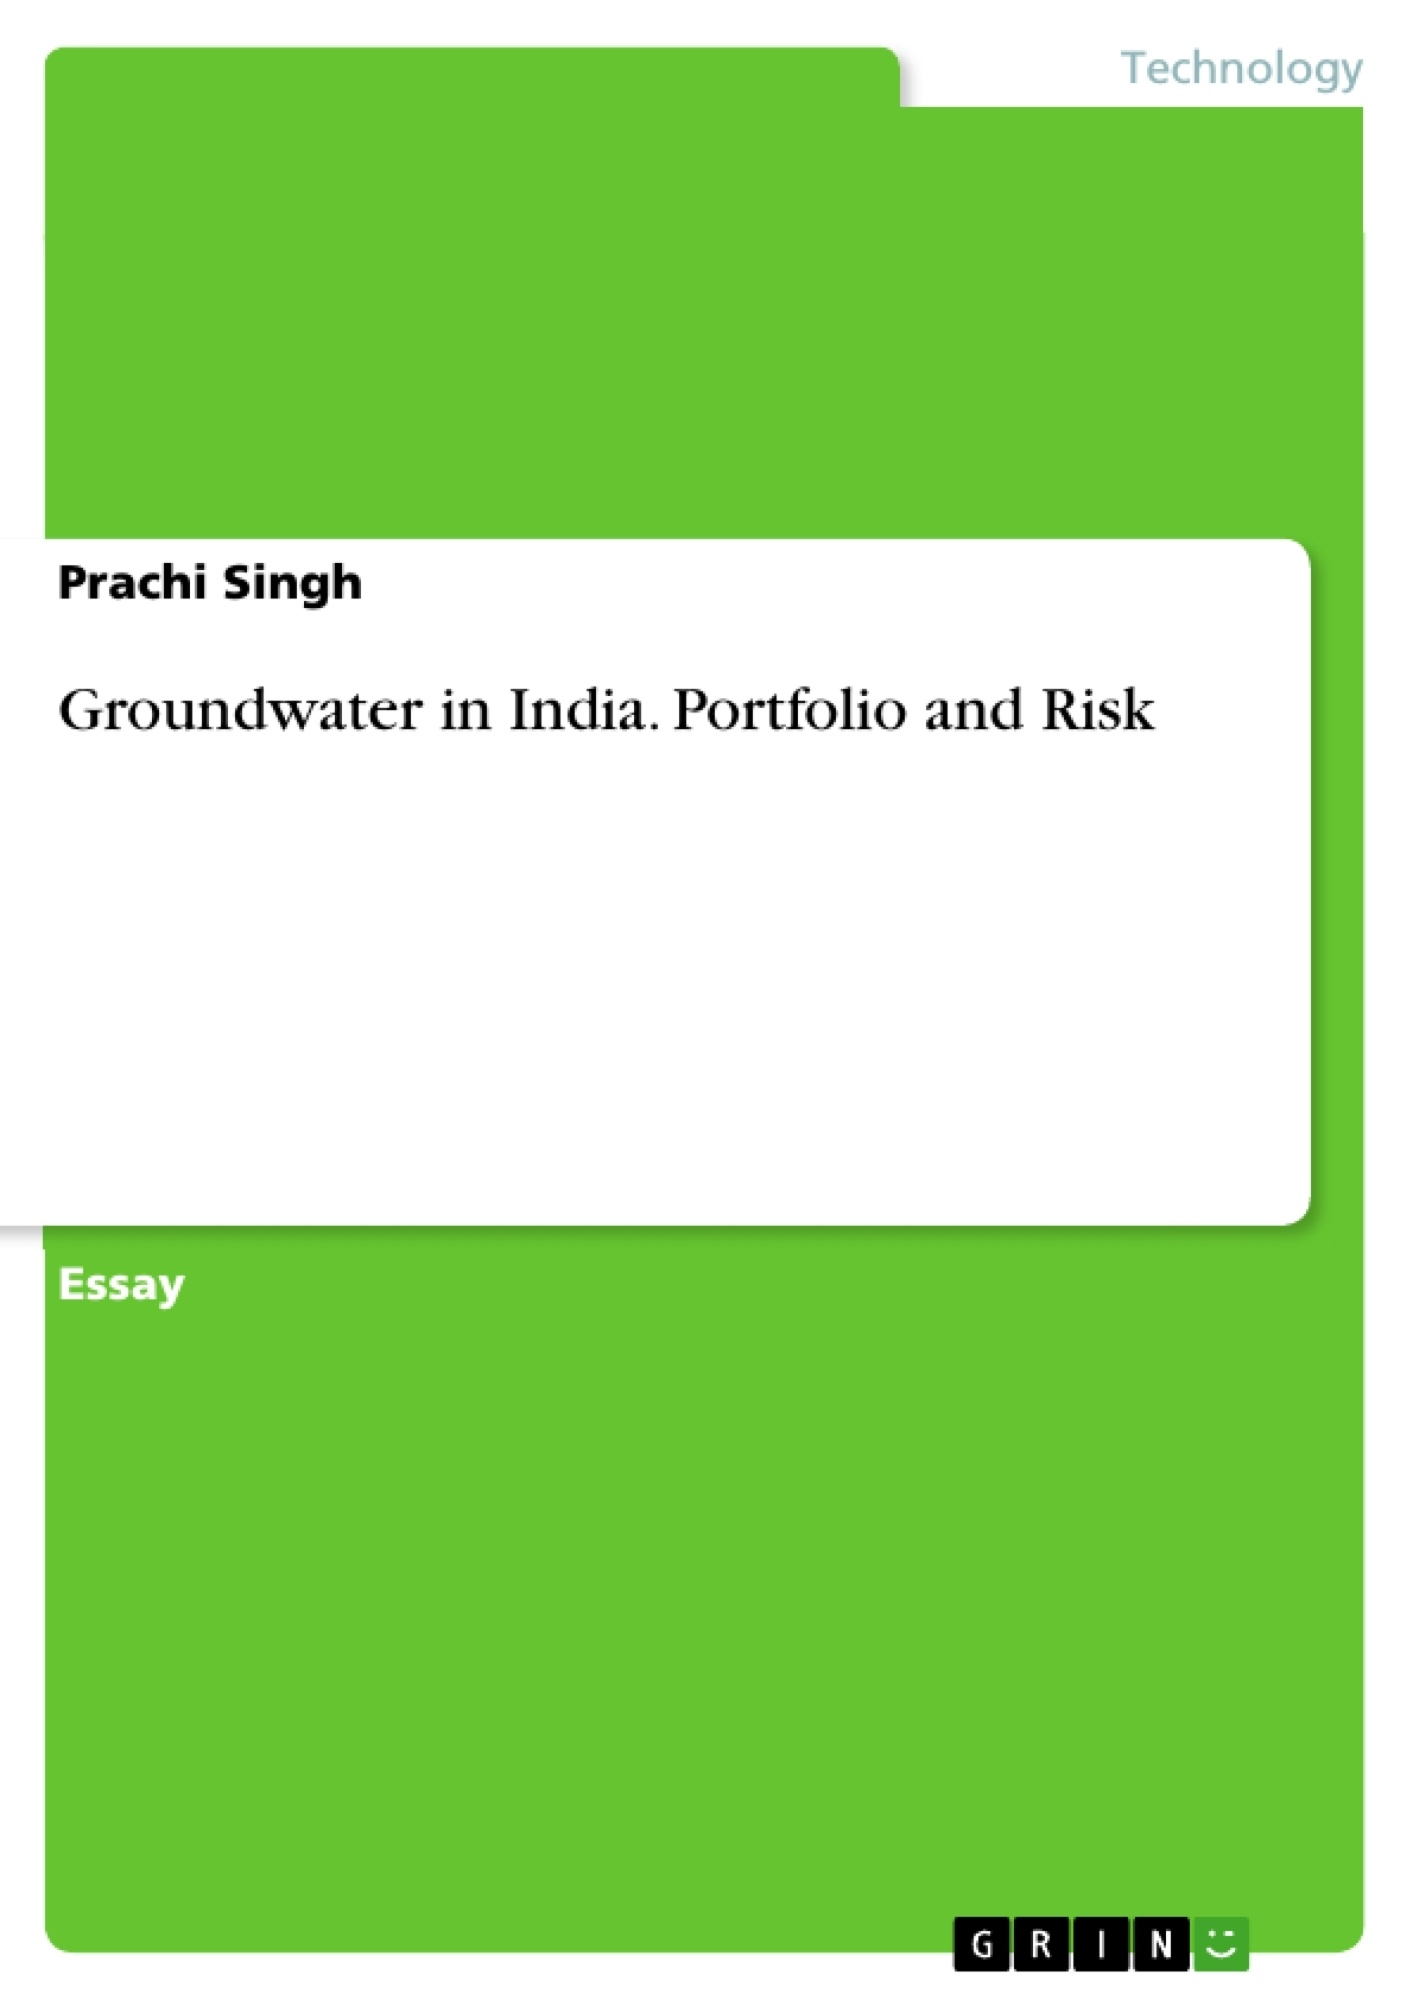 essay about groundwater